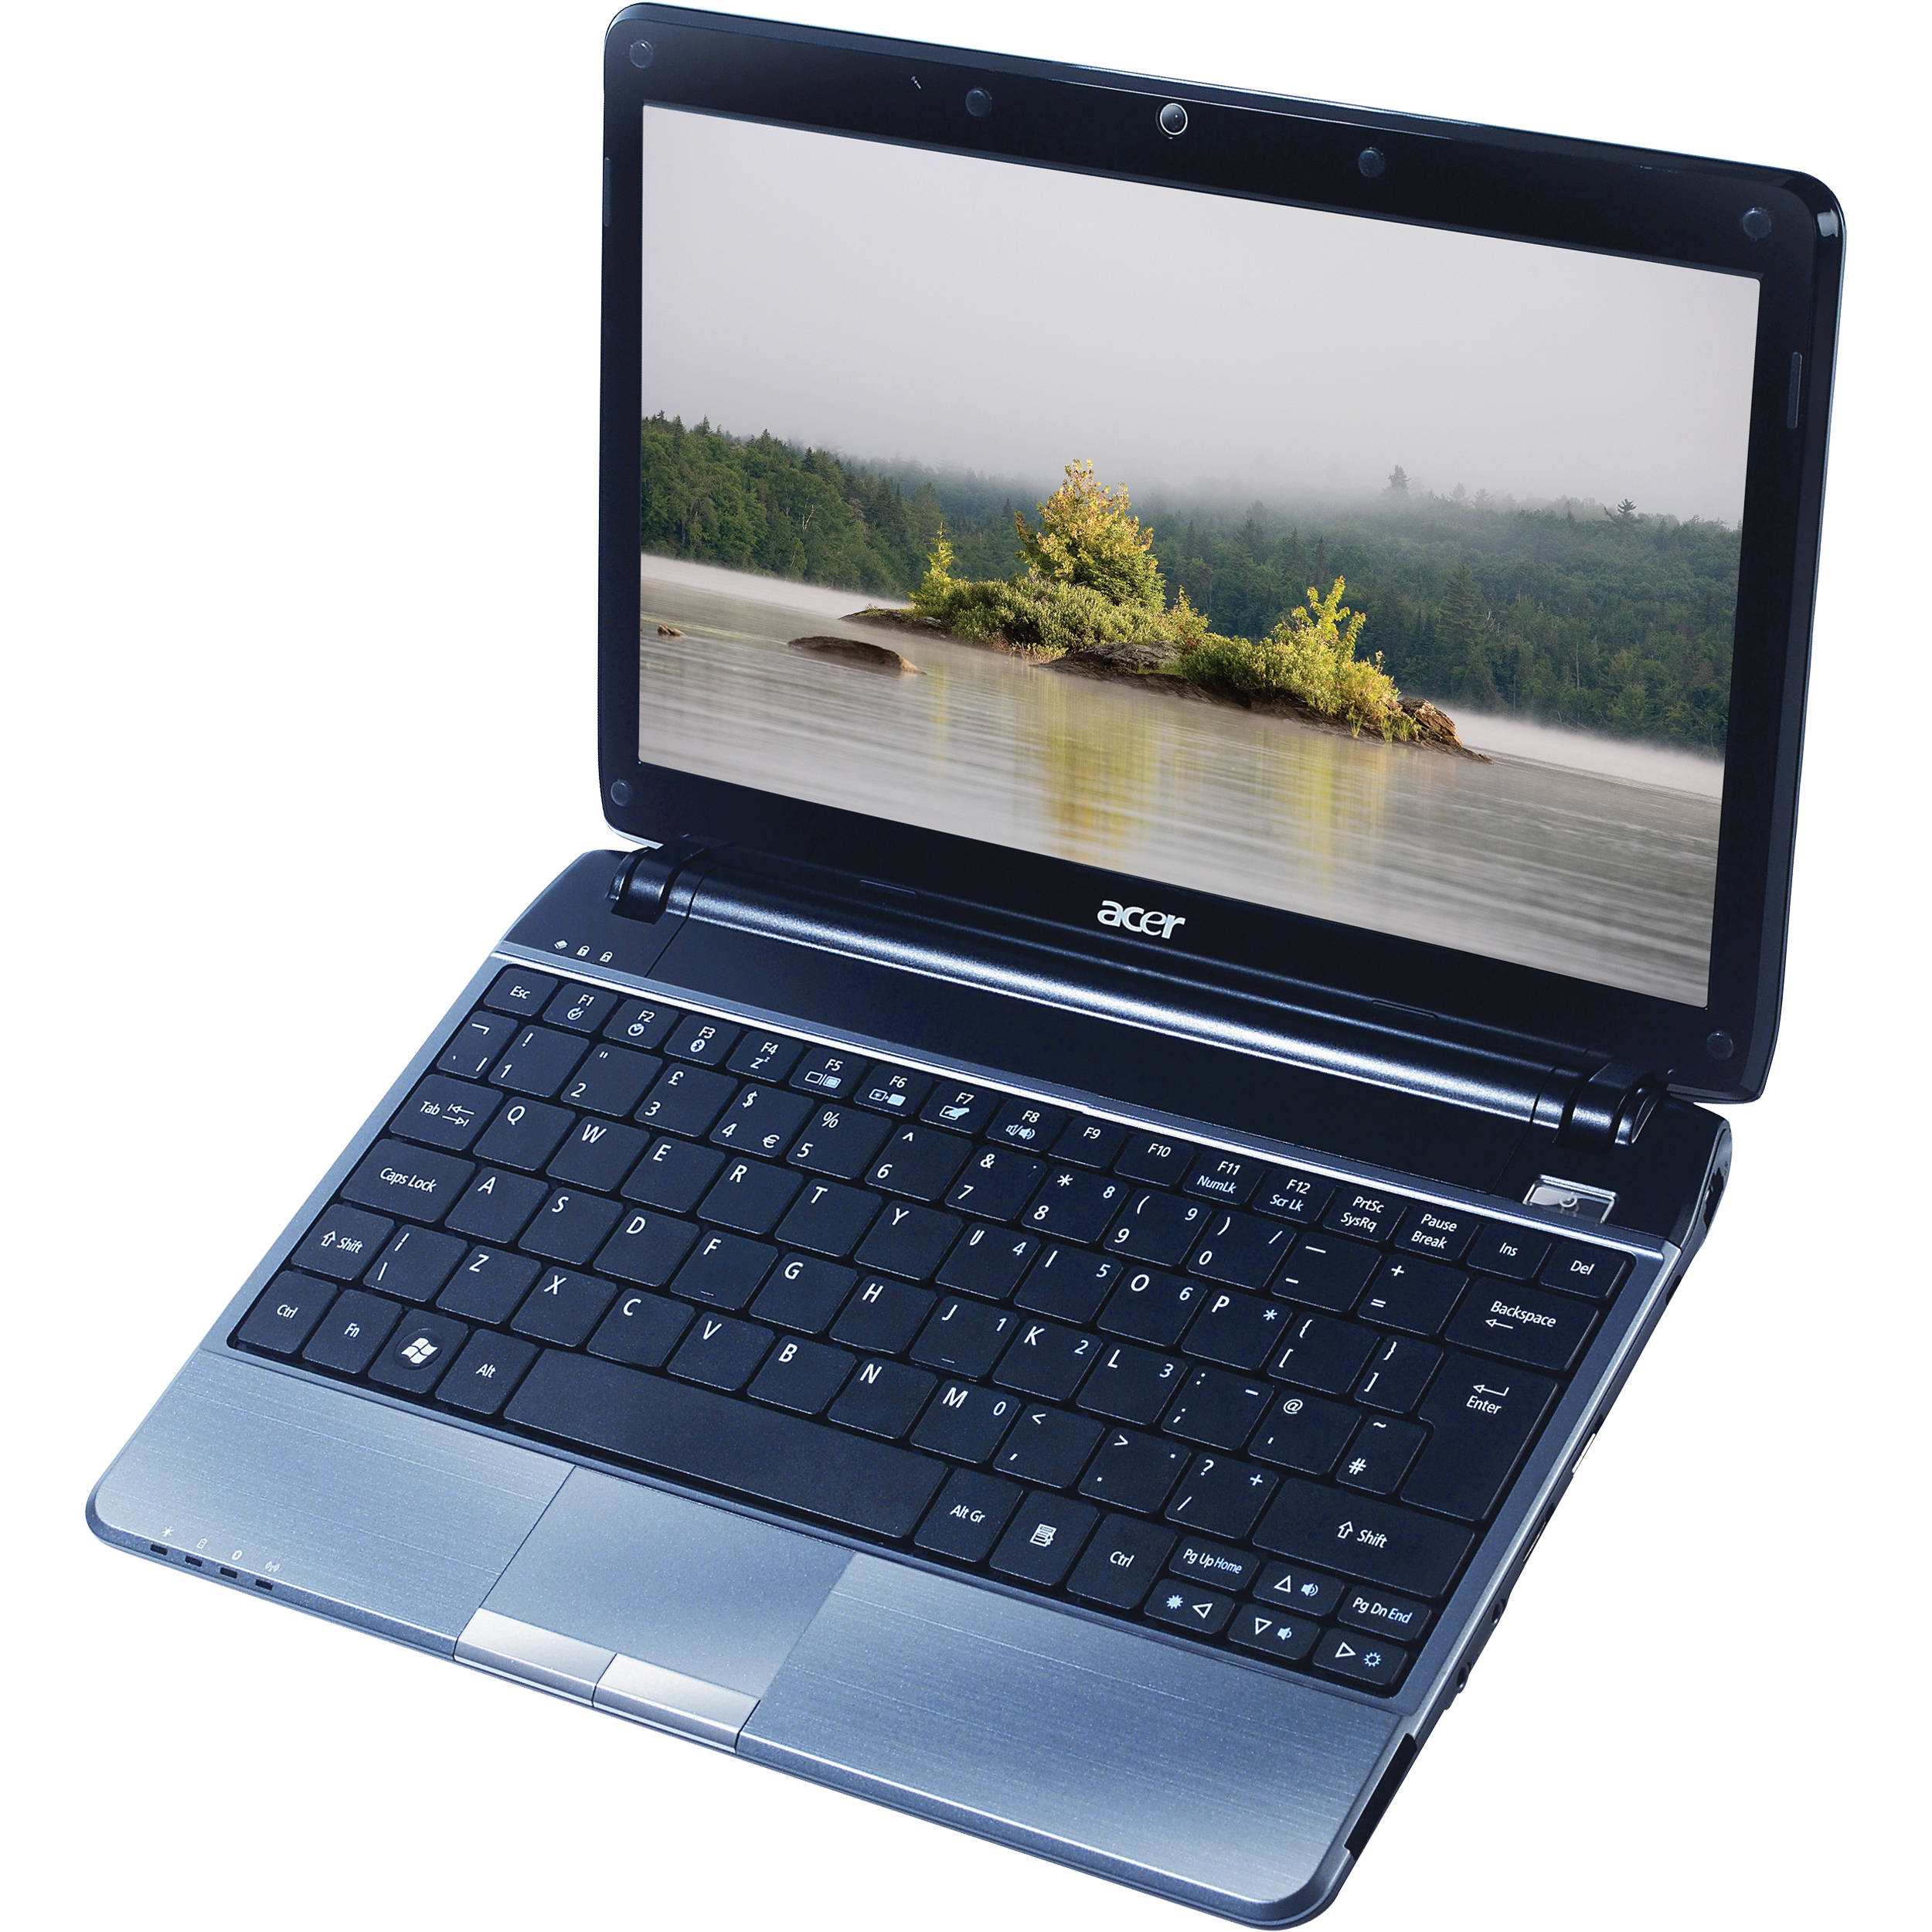 ACER ASPIRE AS1410 DRIVERS FOR WINDOWS DOWNLOAD